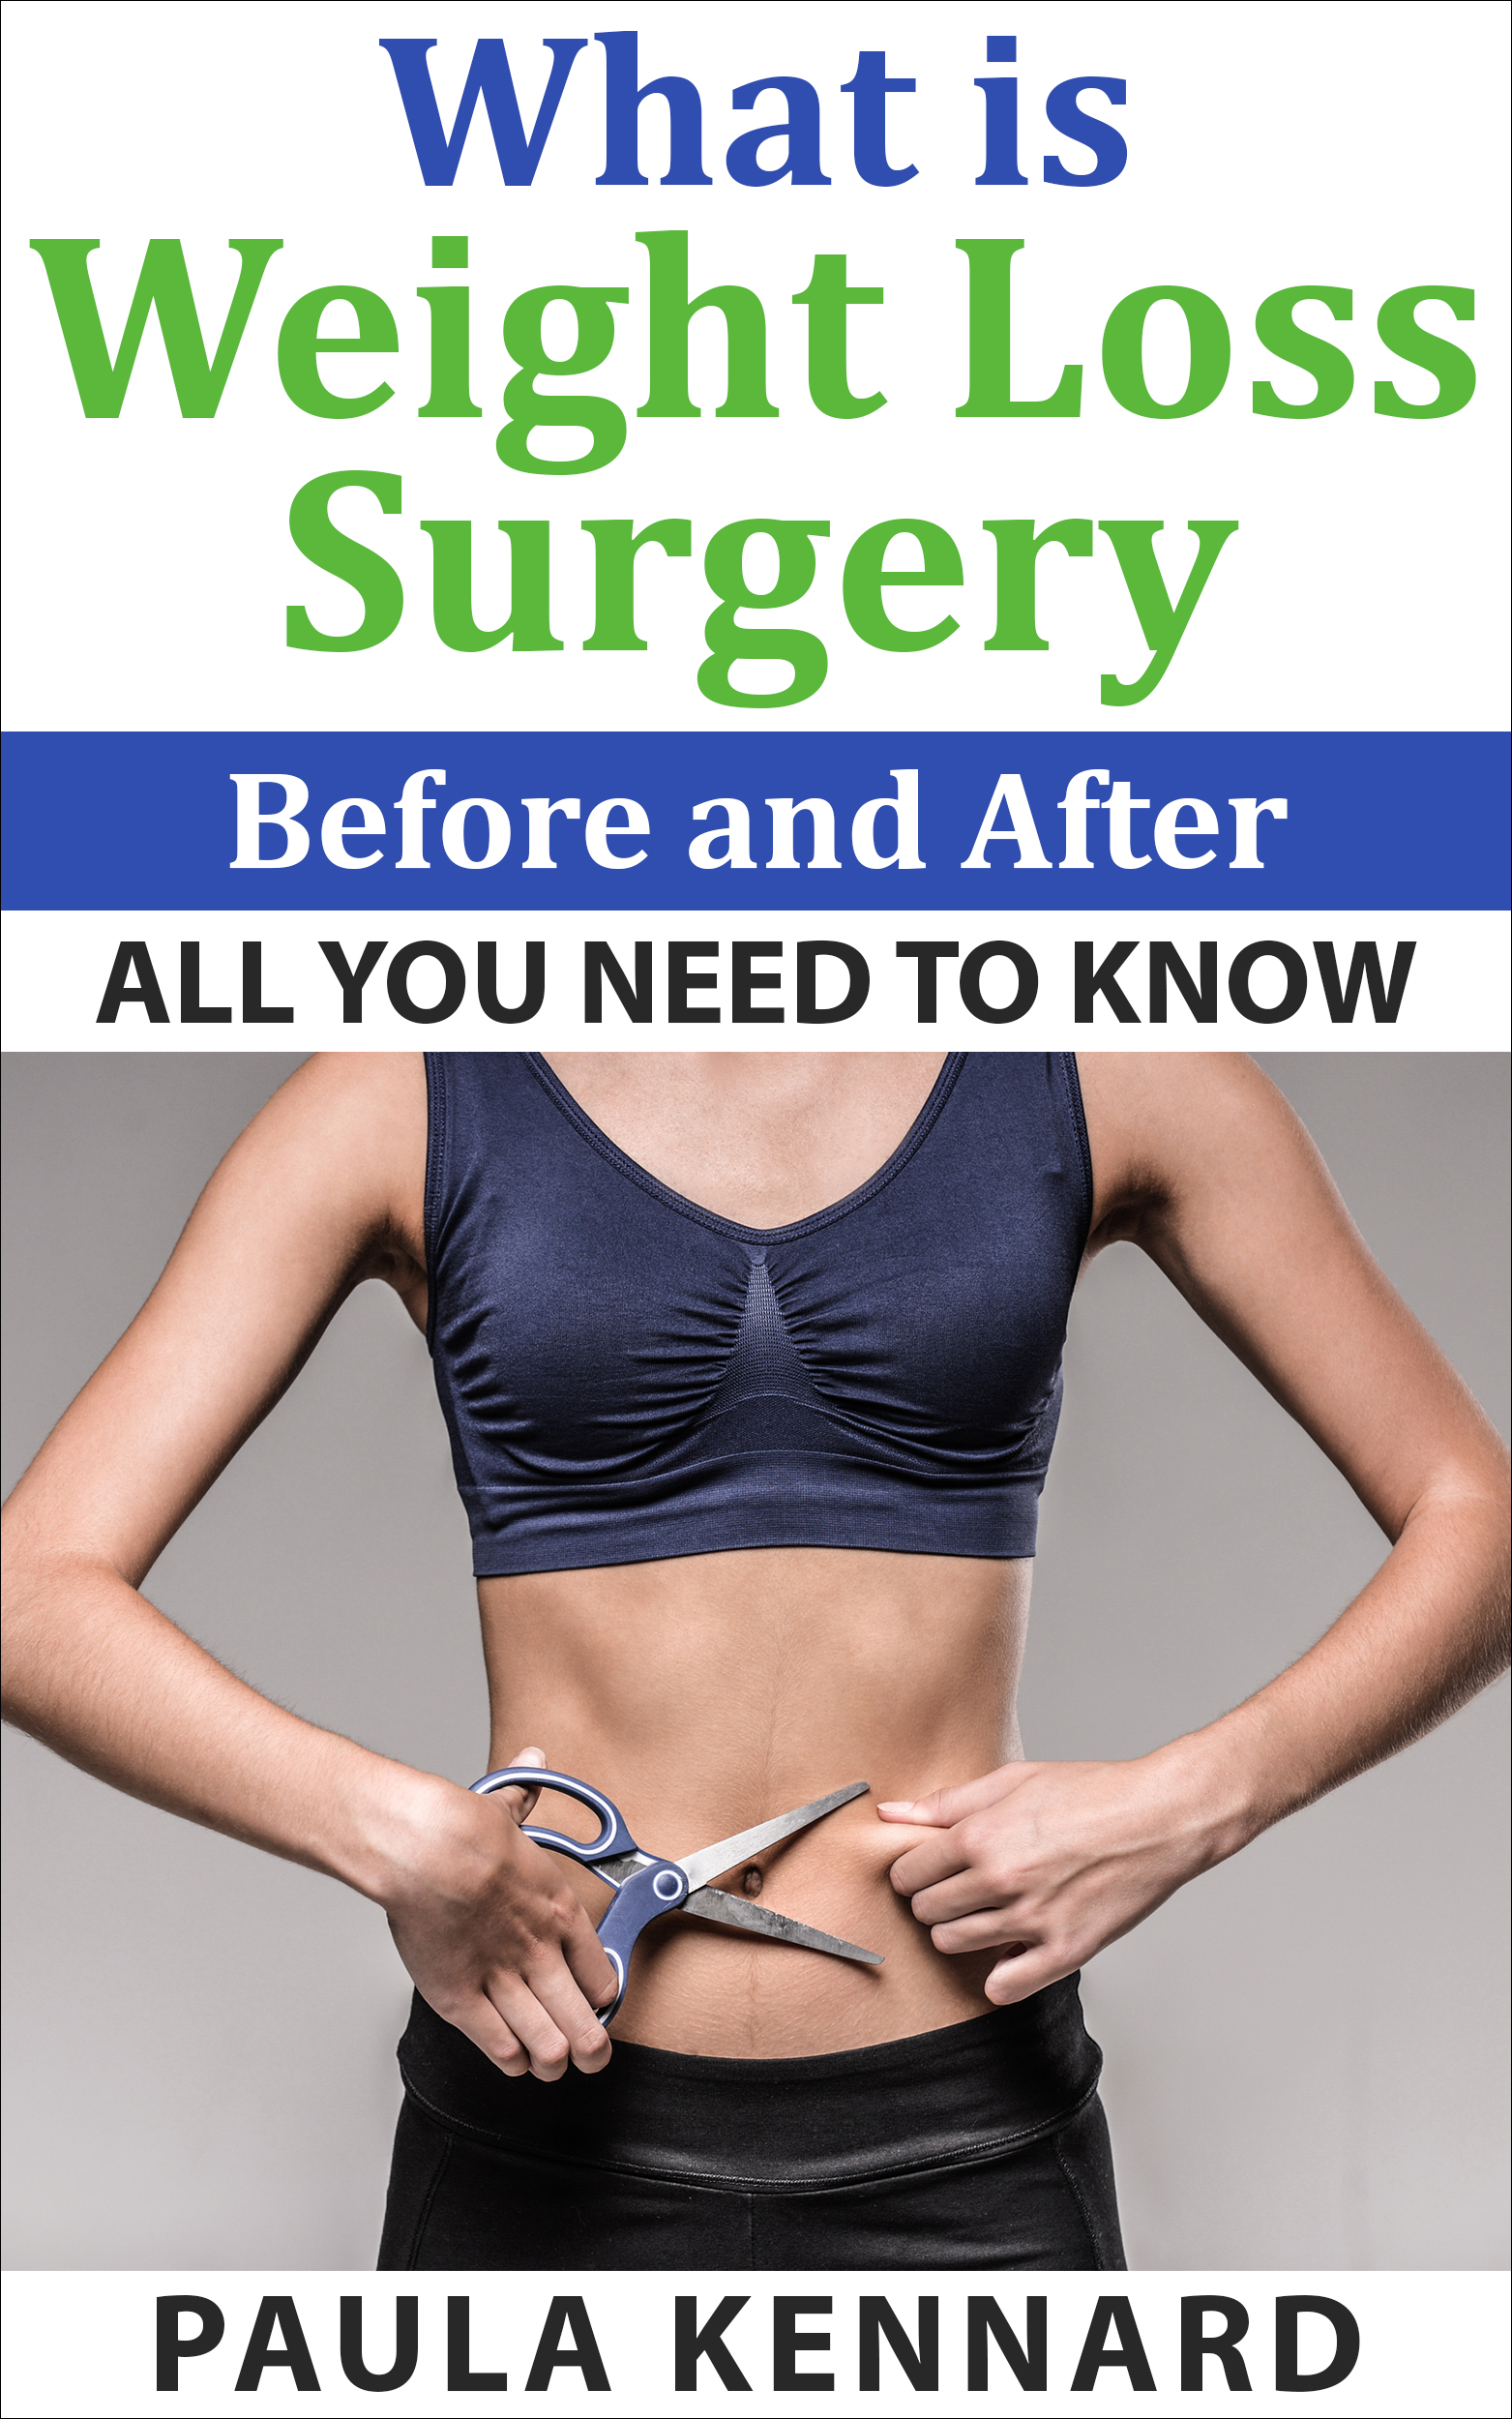 Weight loss surgery - everything you wanted to know - before and after